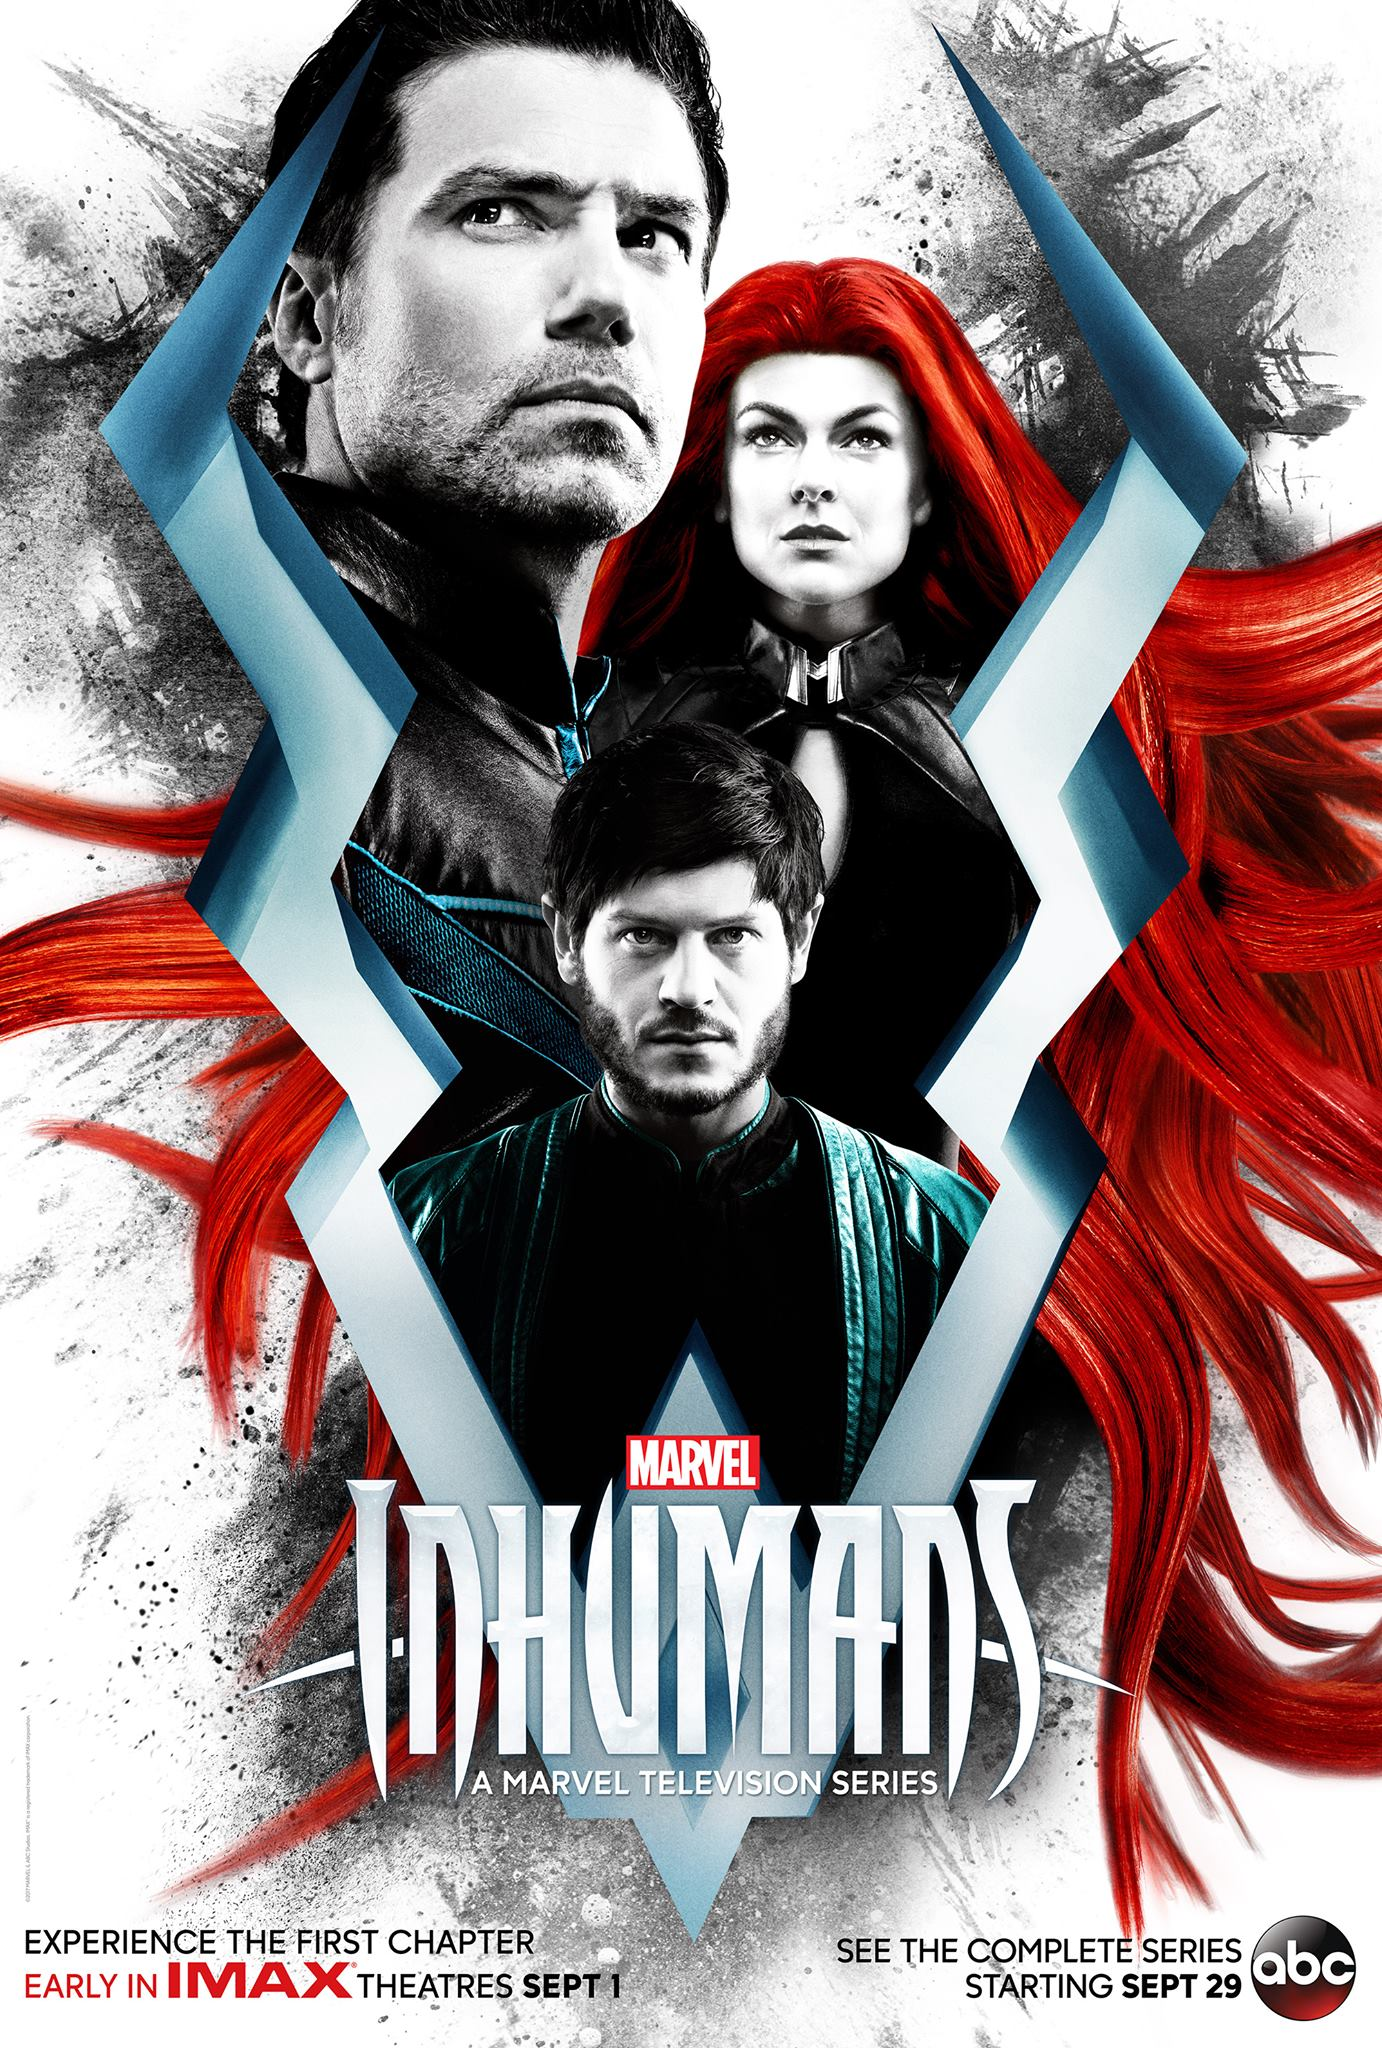 Marvel's Inhumans Releases Poster, TV Premiere Date